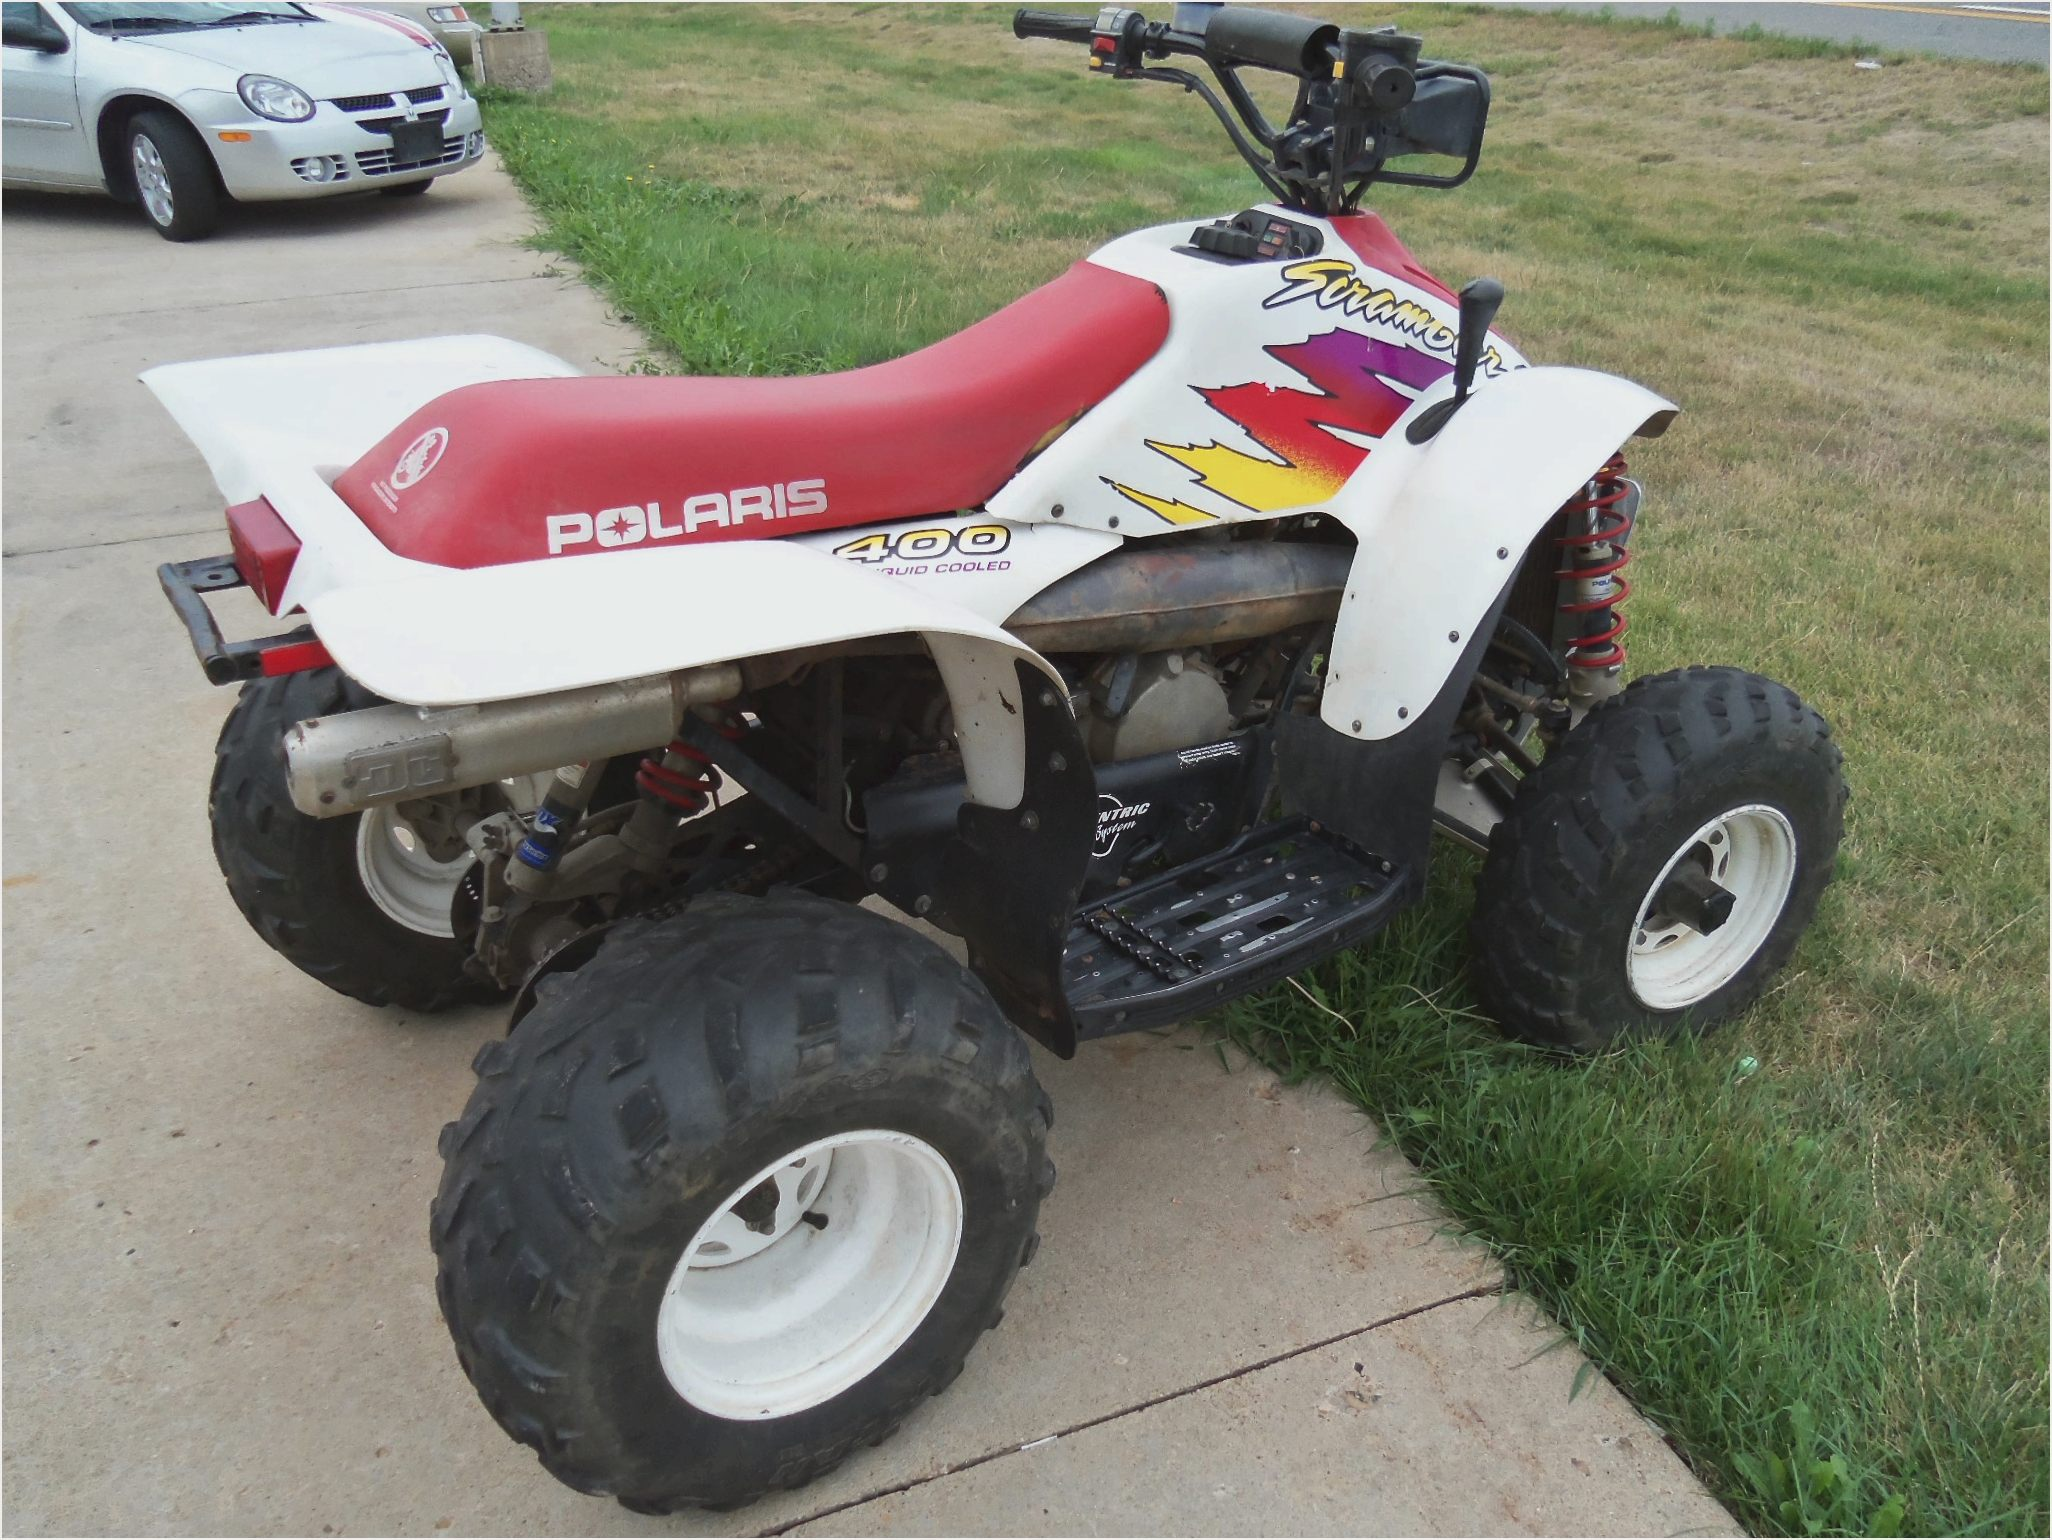 Polaris Scrambler 400 1999 images #120831